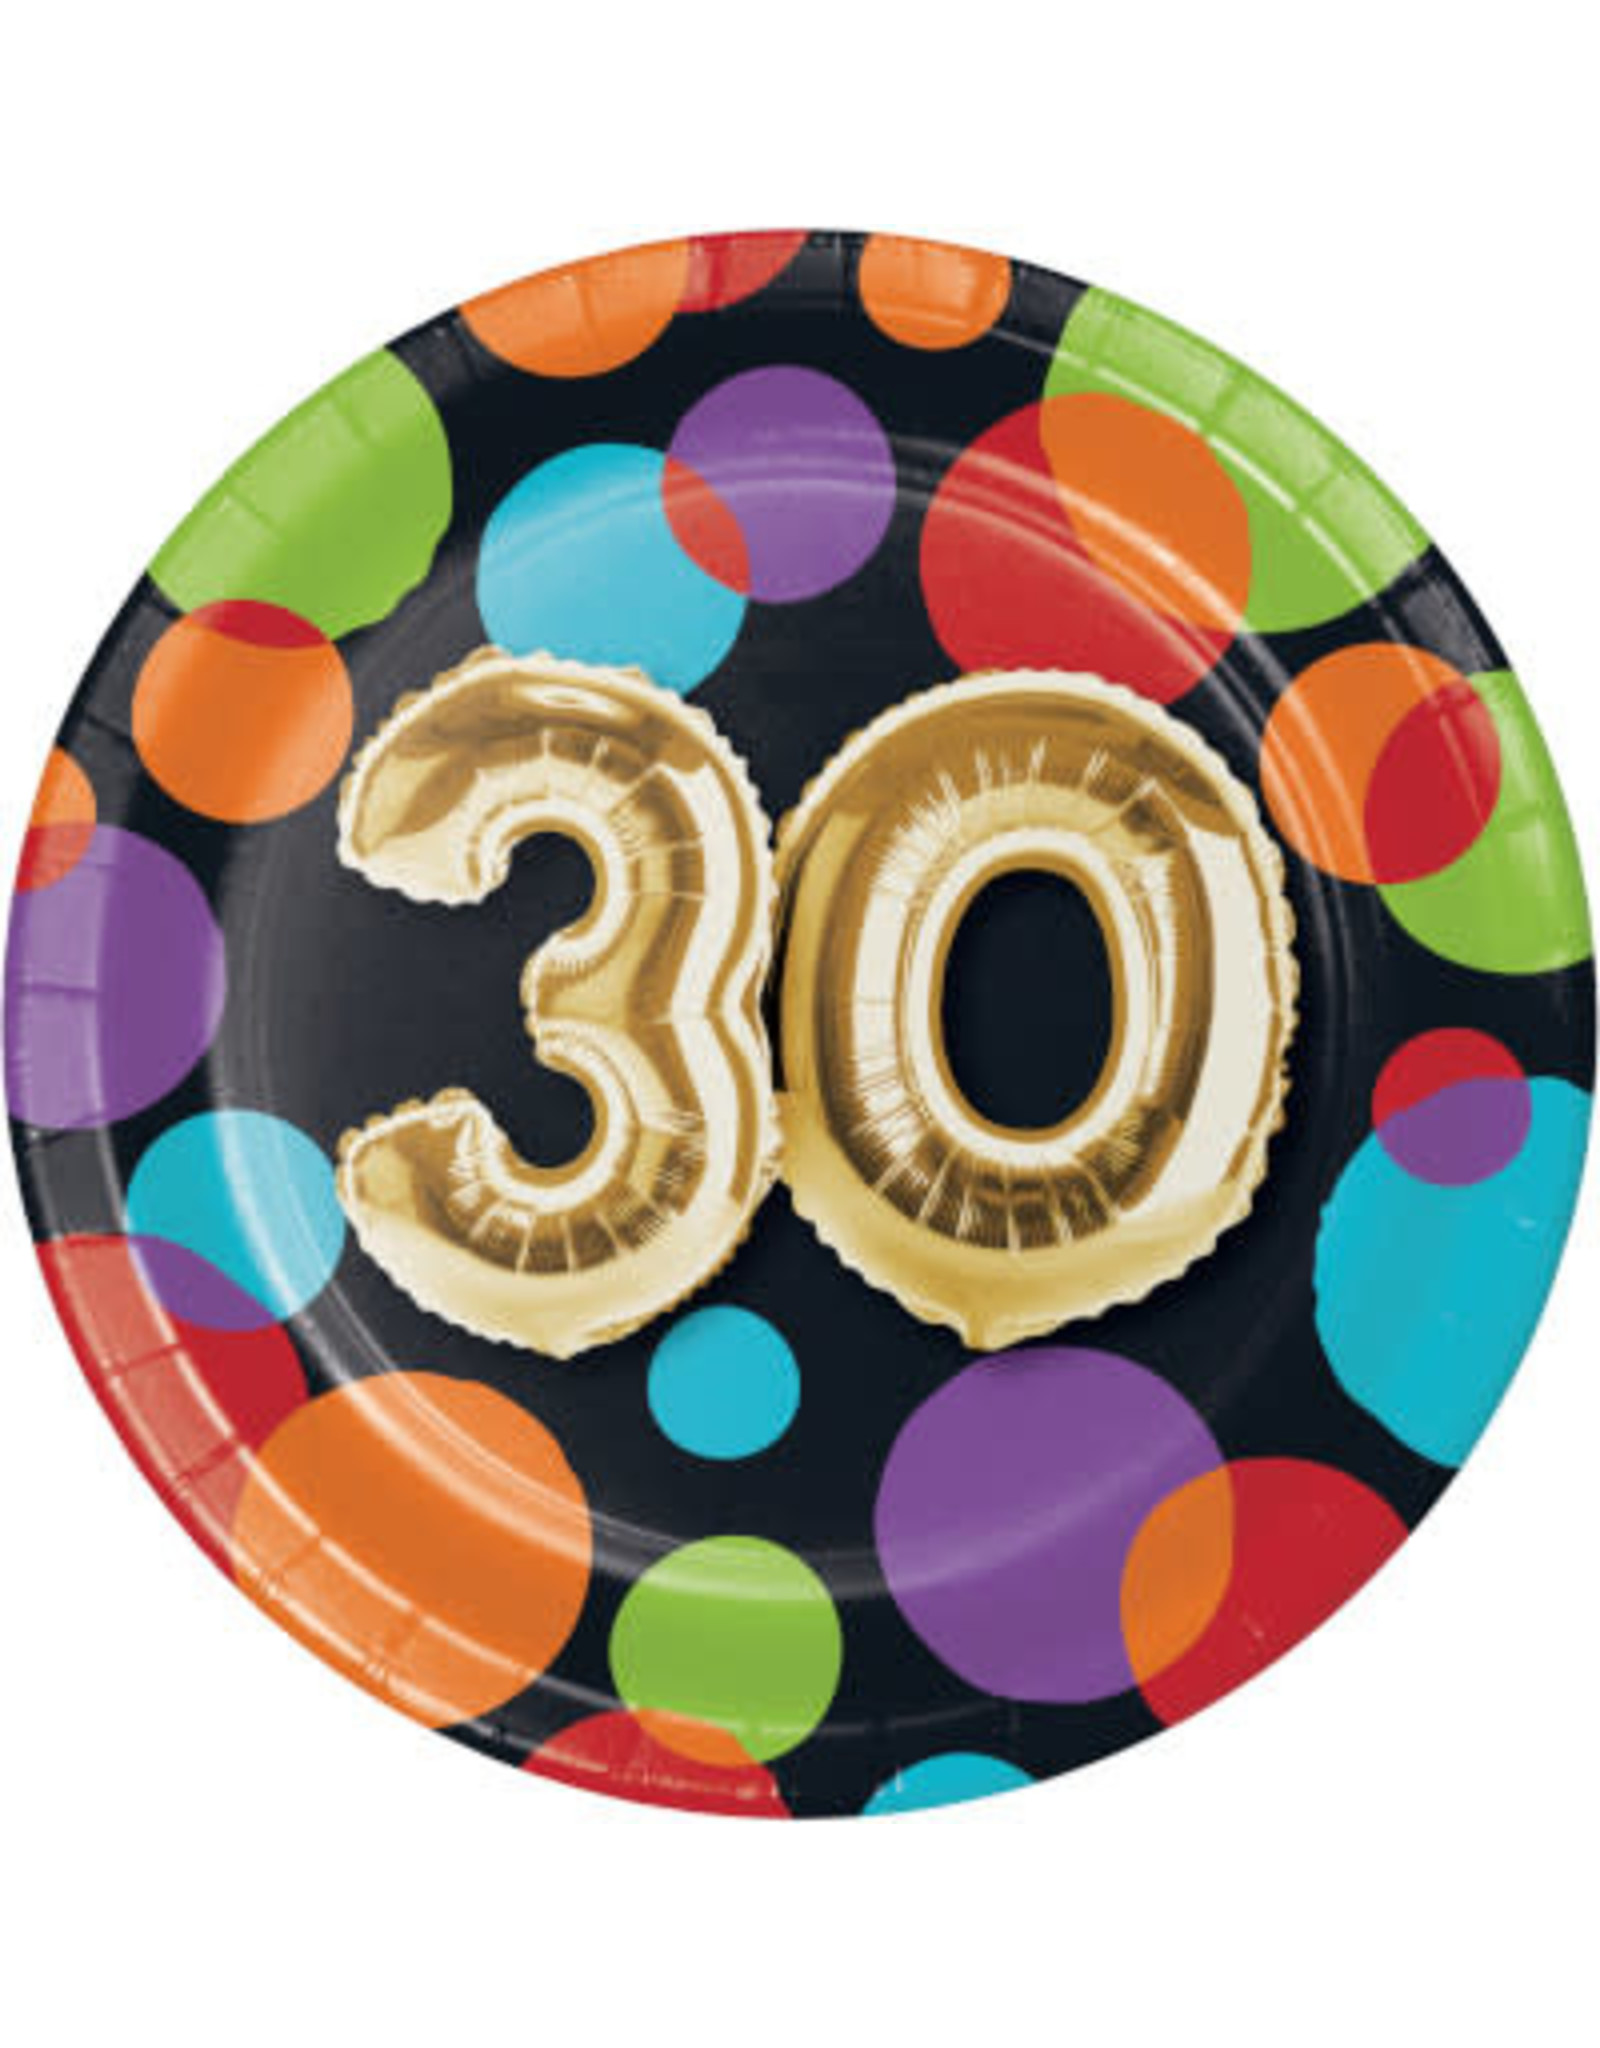 Party Creations 30 balloon birthday 7in. Plate - 8ct.